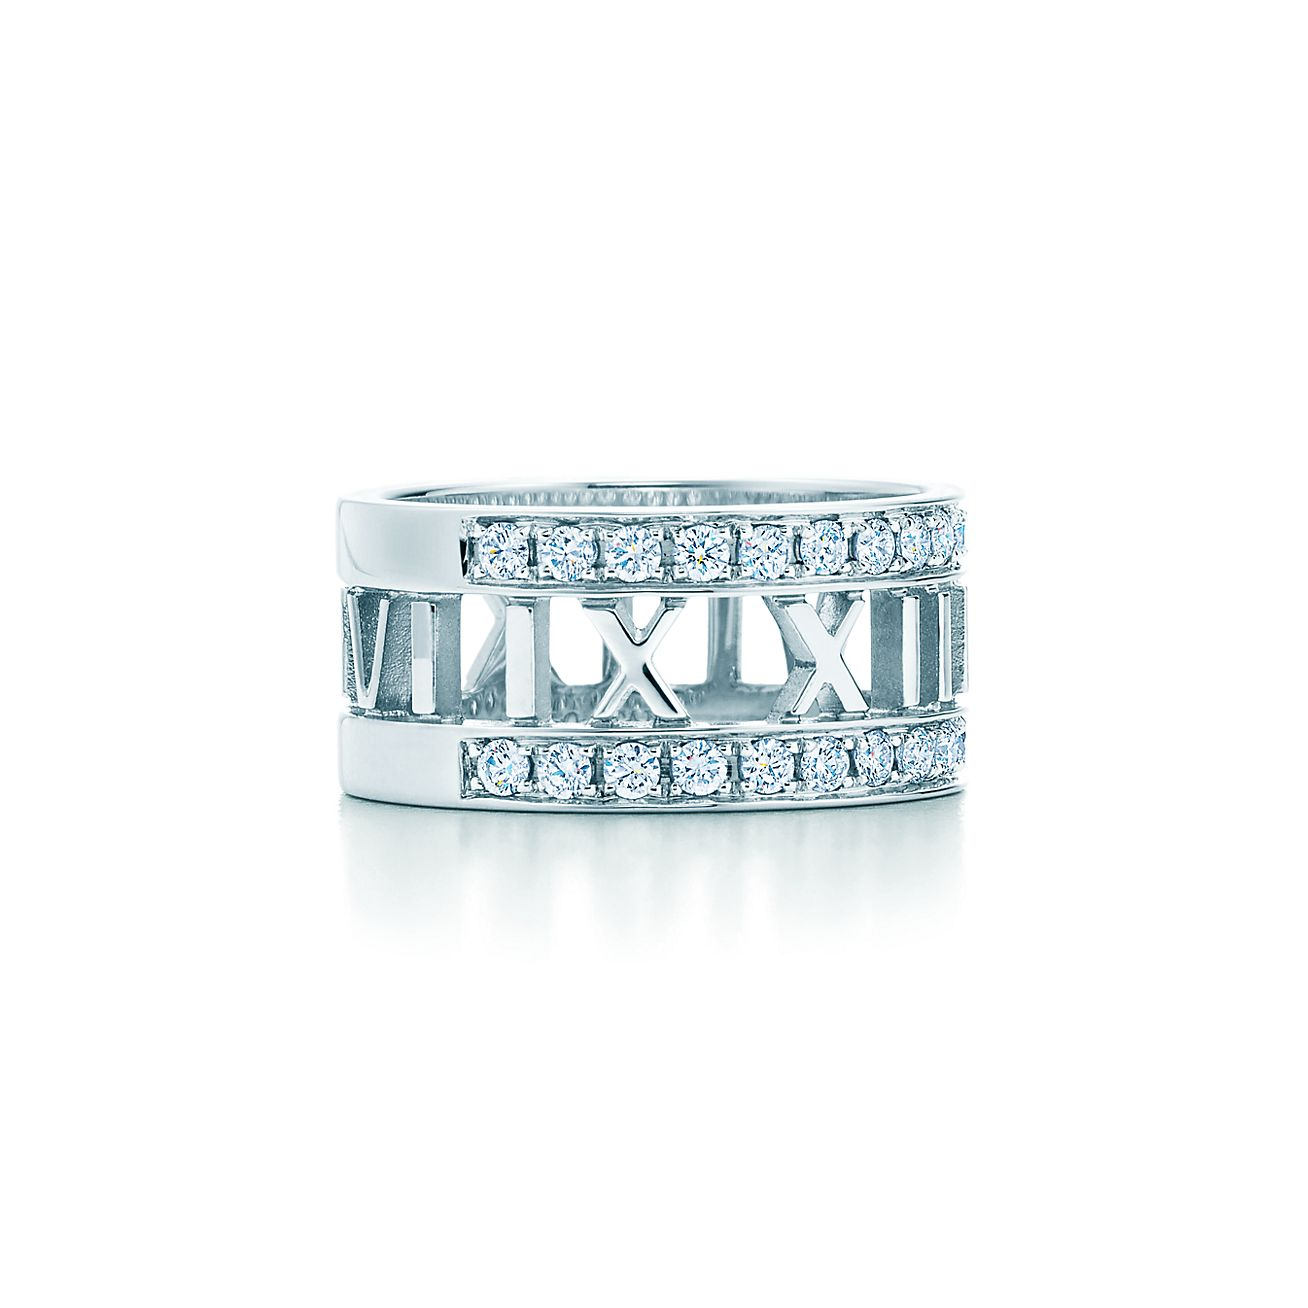 Atlas open ring in 18k white gold with diamonds - Size 7 1/2 Tiffany & Co.